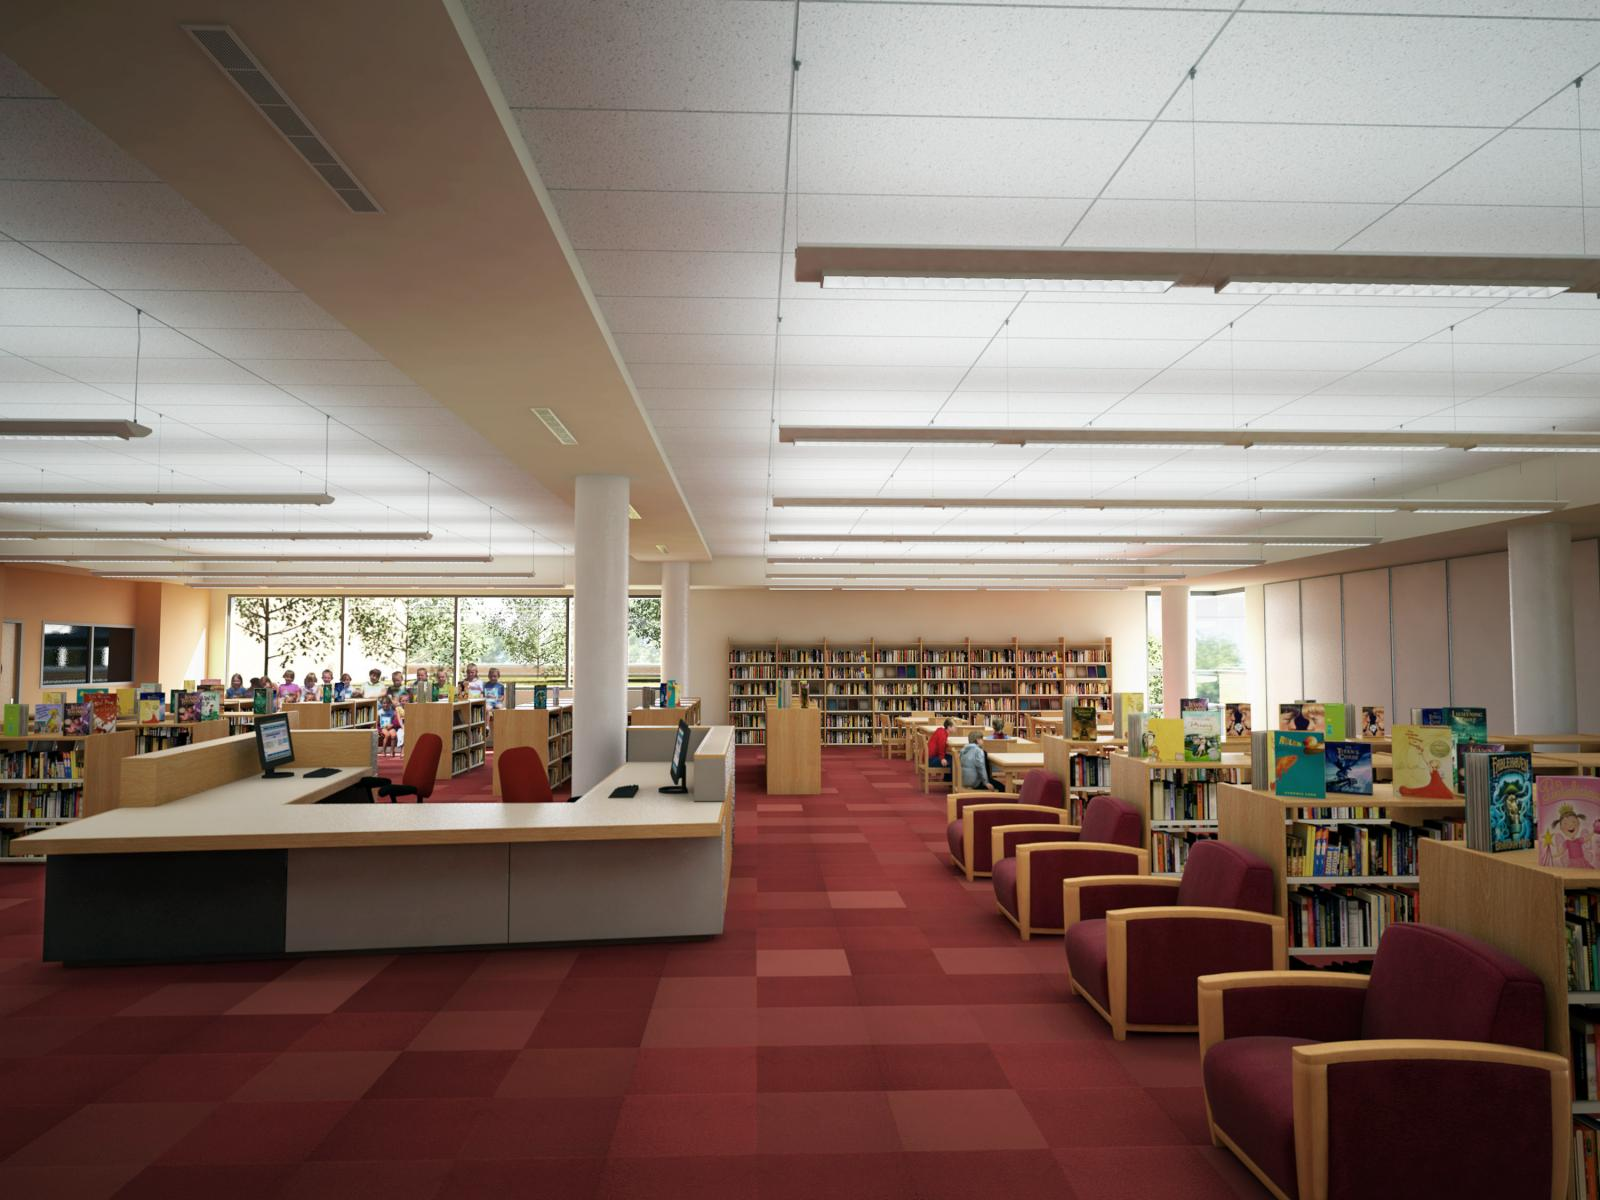 Skinner Elementary School Library without Clerestory